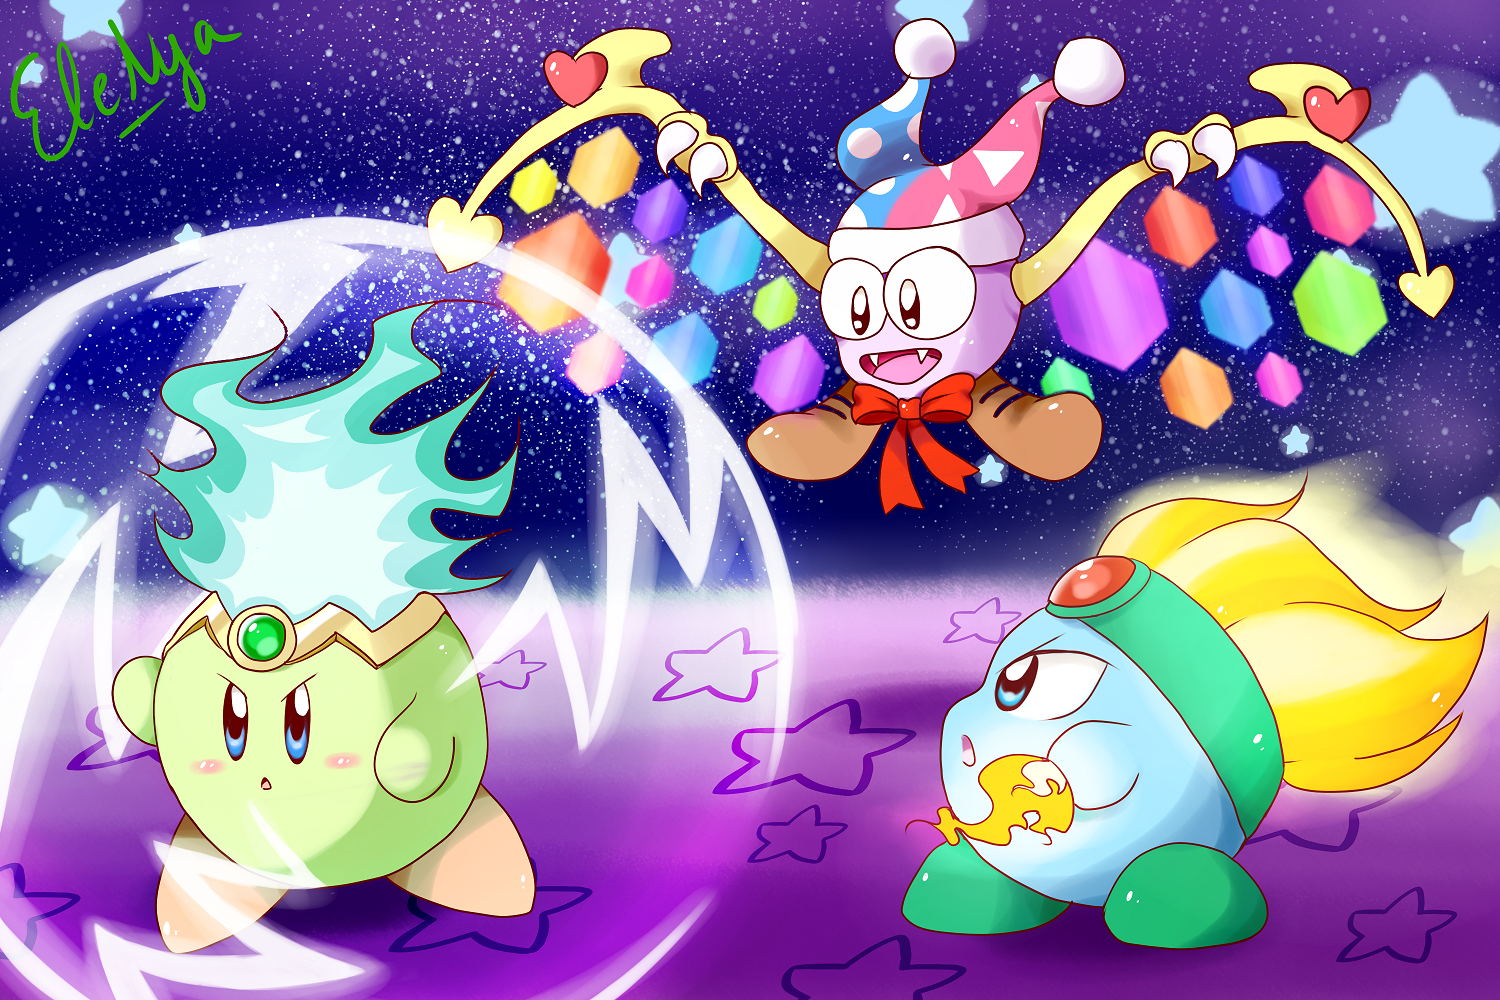 Nya Kirby Wallpaper: Kirby And Leo Vs Marx By Ele-nya On DeviantArt